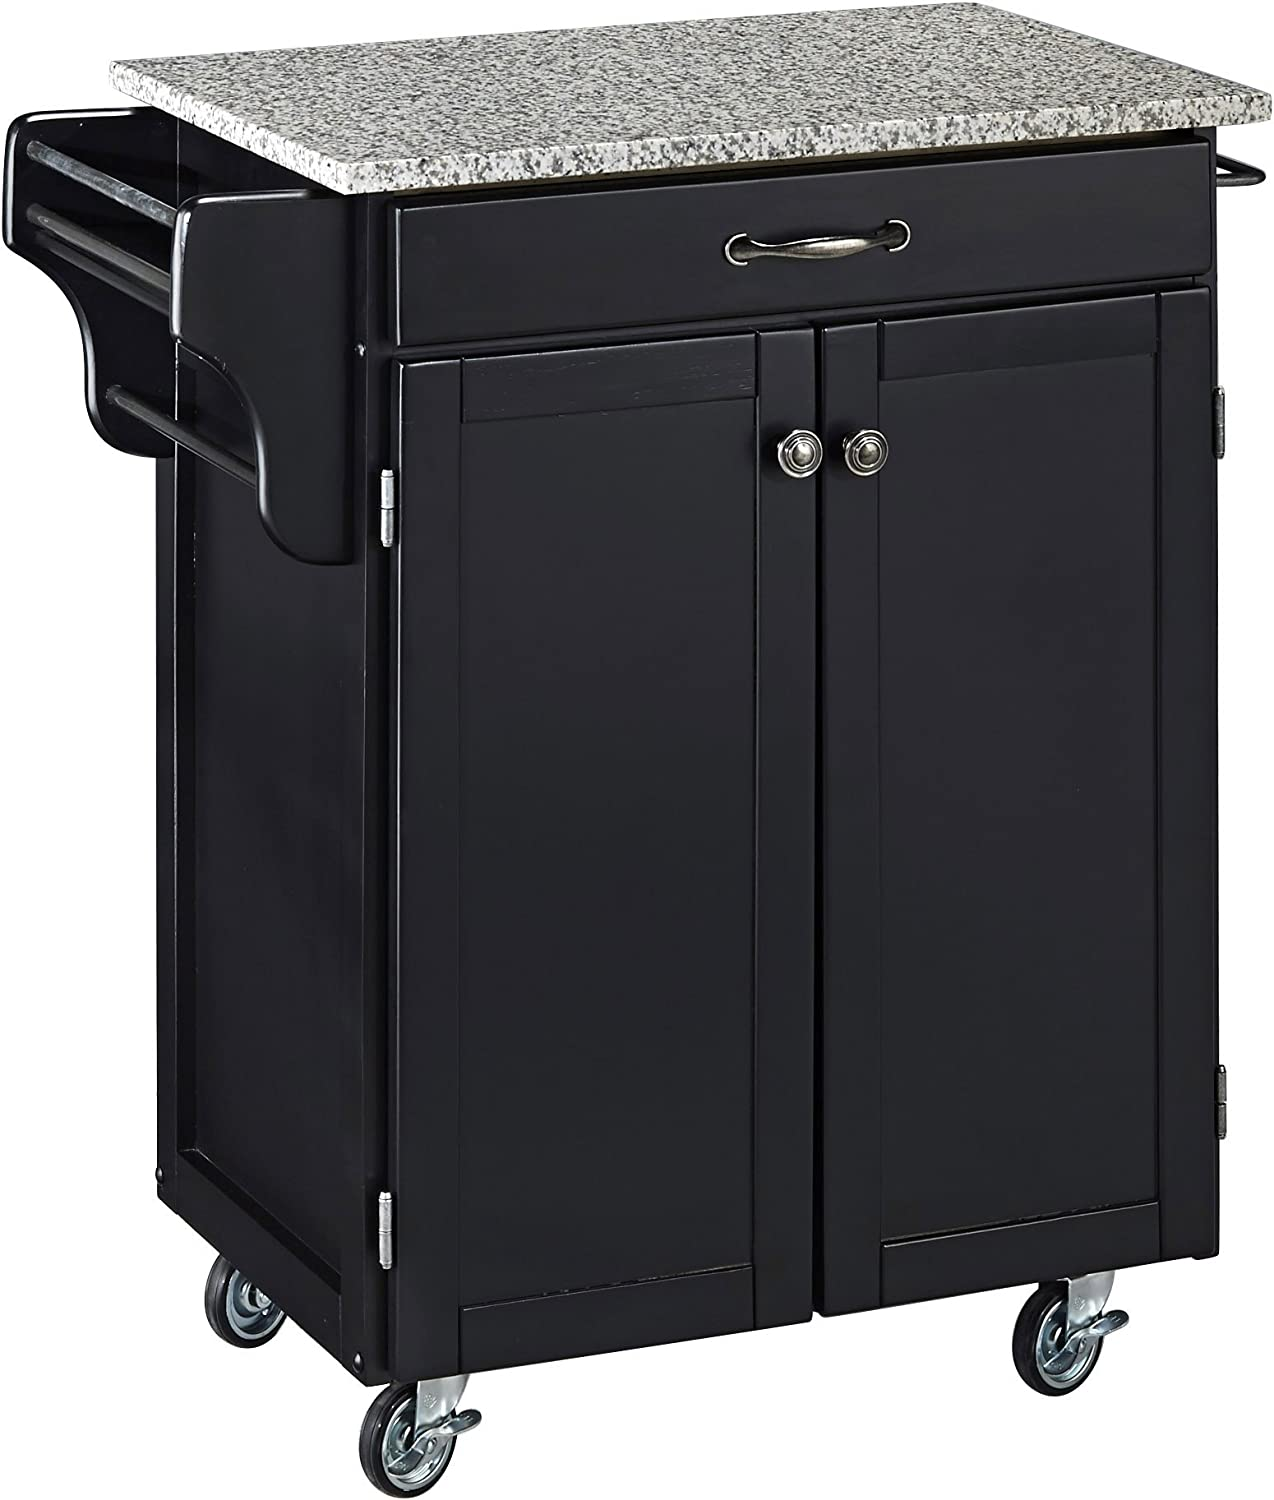 Create-a-Cart Black 2 Door Cabinet Kitchen Cart with Salt and Pepper Granite Top by Home Styles